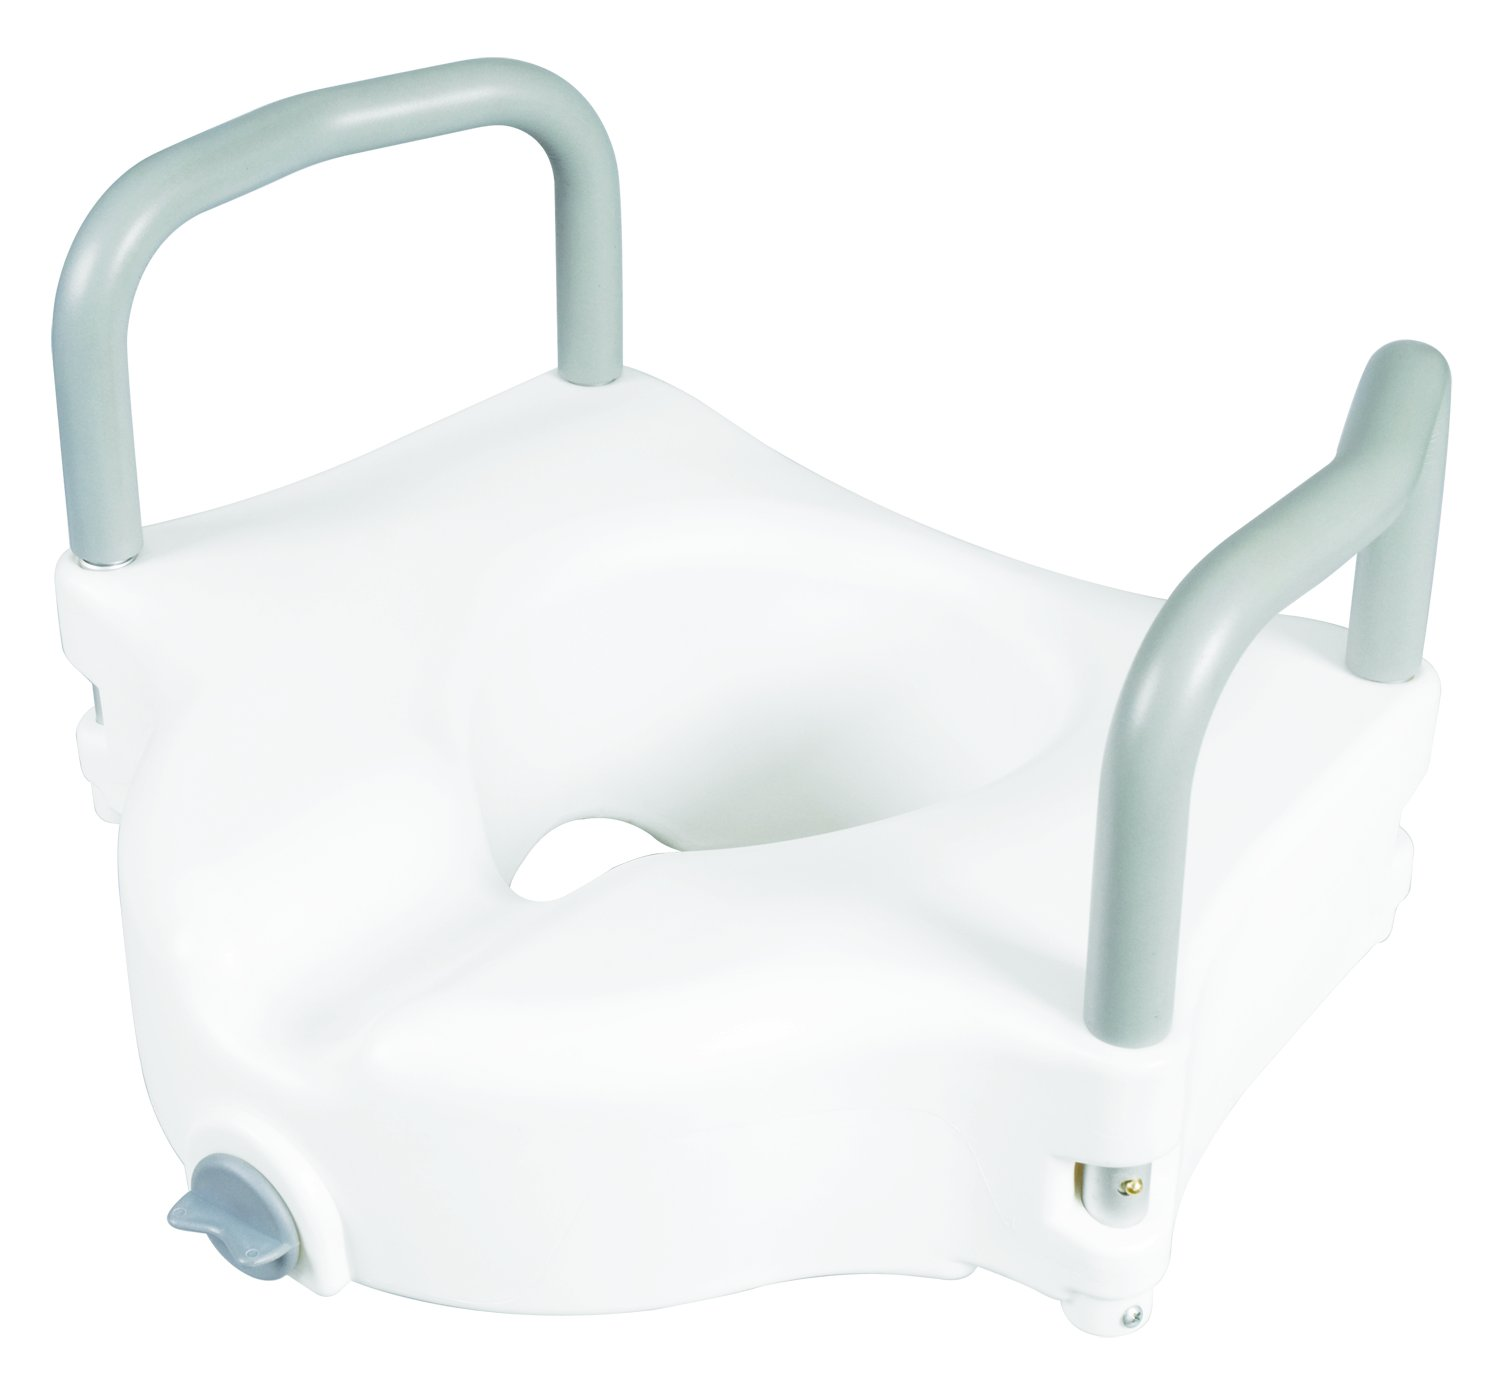 Carex B31877 Raised Toilet Seat with Arms